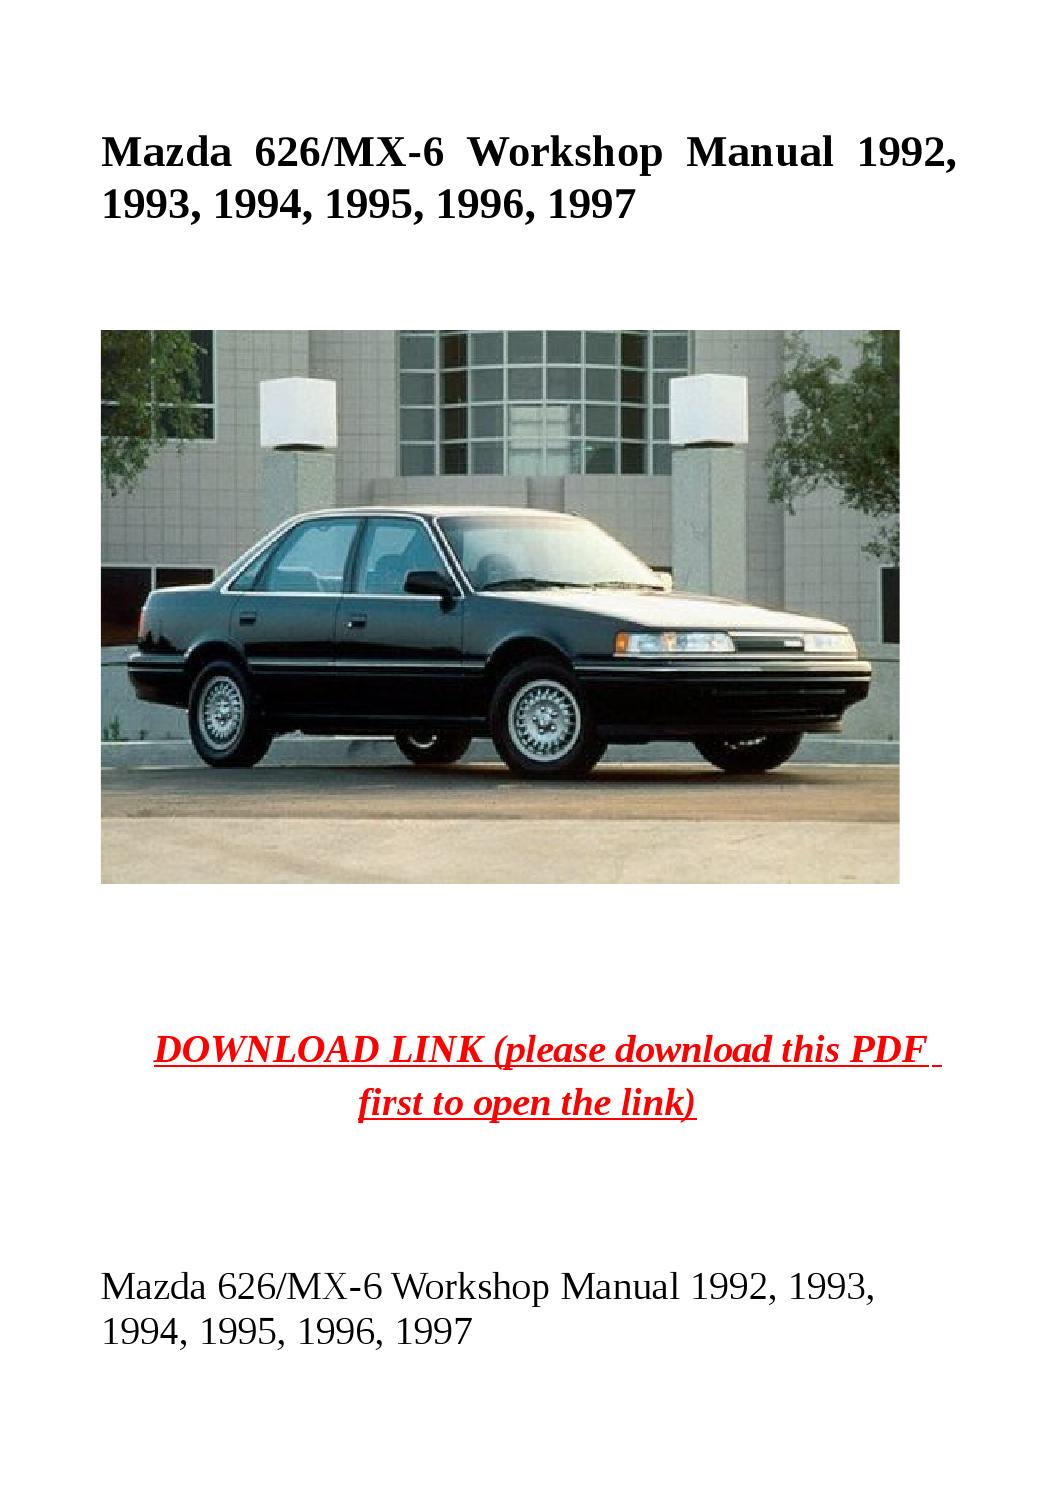 Mazda 626 mx 6 workshop manual 1992, 1993, 1994, 1995, 1996, 1997 by Dora  tang - issuu